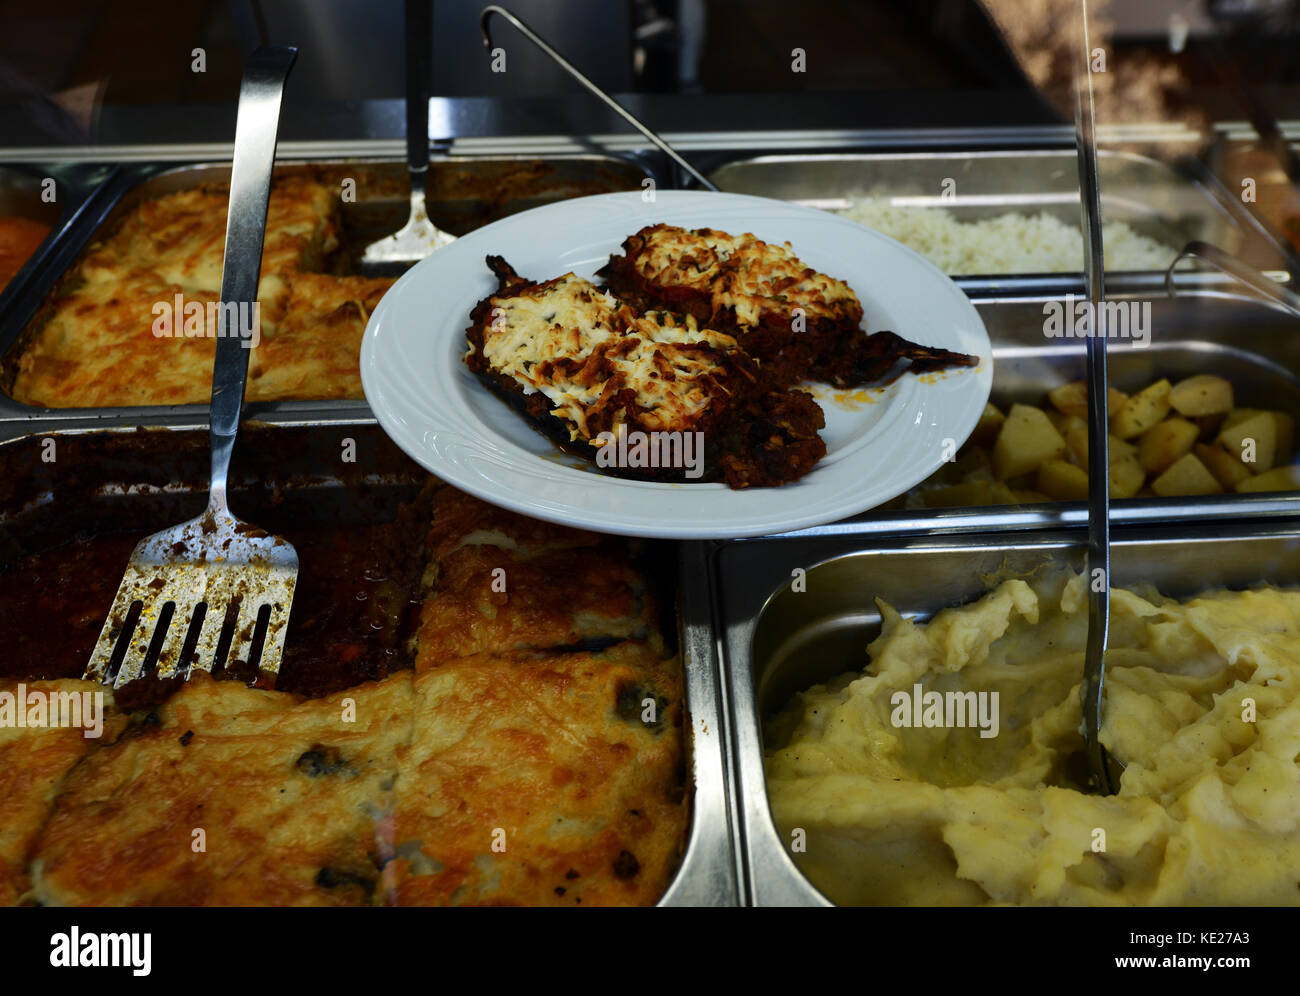 A local eatery serving Greek food in Thessaloniki., - Stock Image